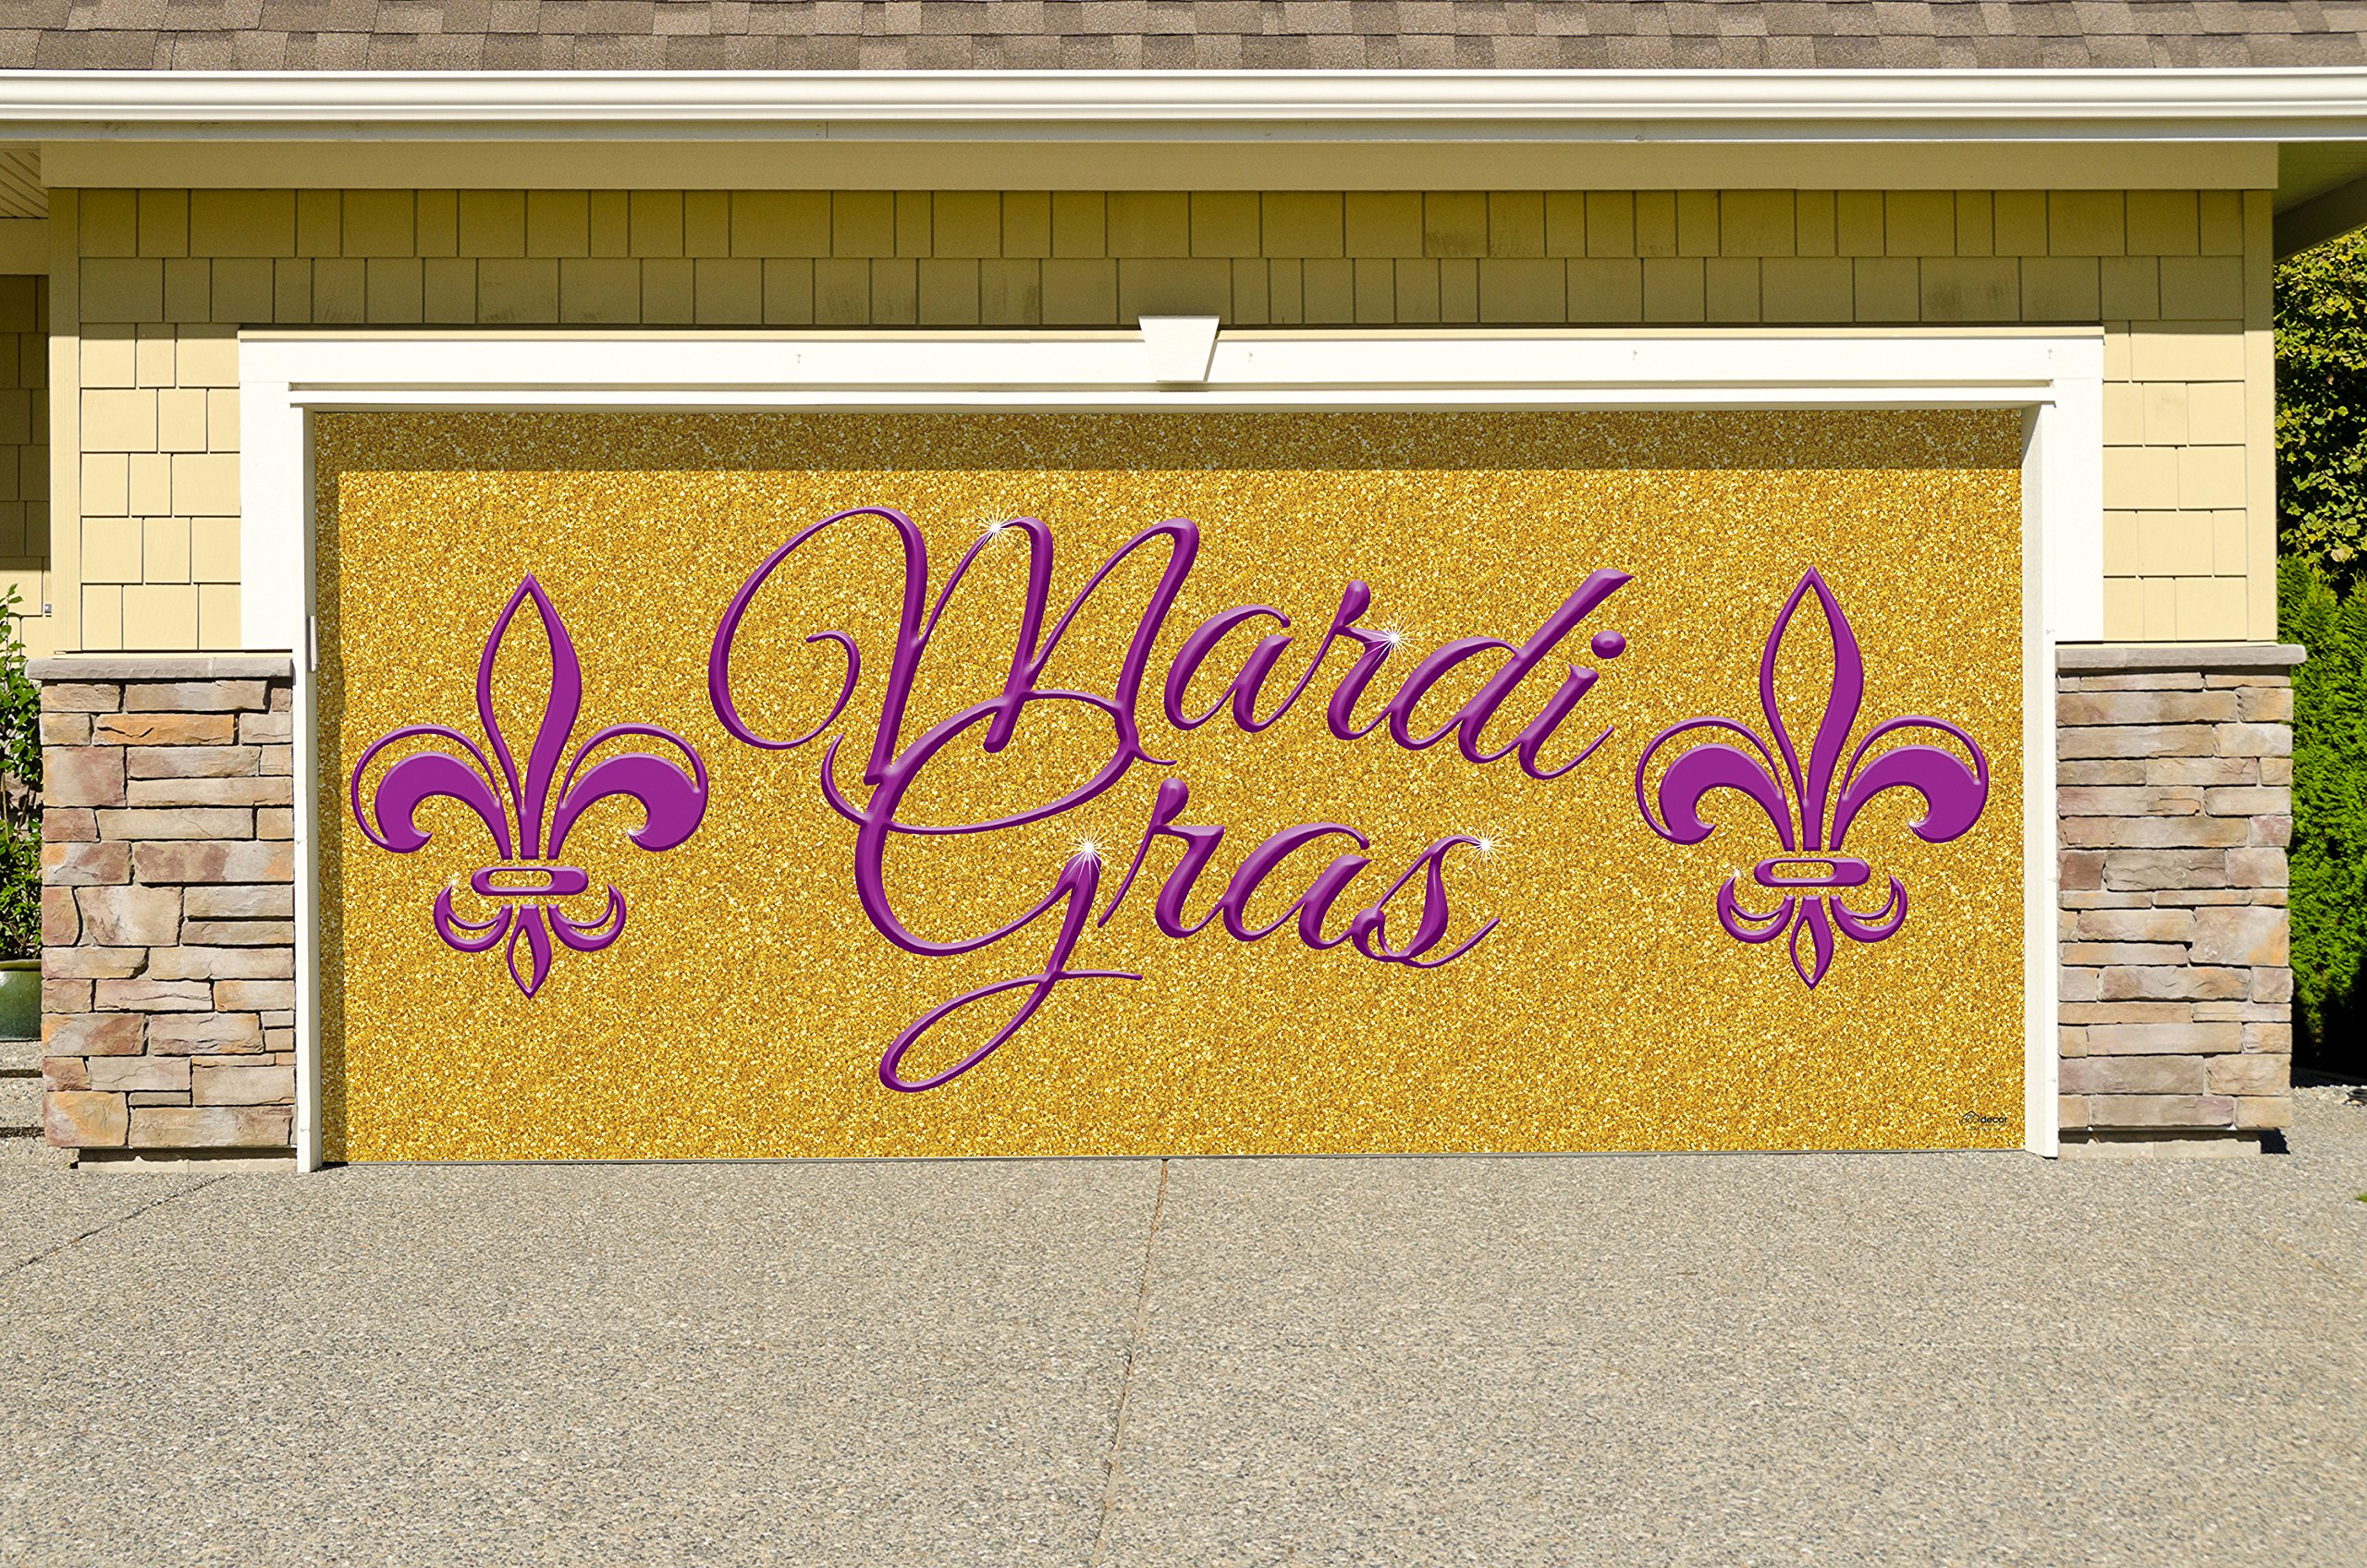 Outdoor Mardi Gras Decorations Garage Door Banner Cover Mural Décoration 7'x16' - Mardi Gras Gold Glitter- ''The Original Mardi Gras Supplies Holiday Garage Door Banner Decor''